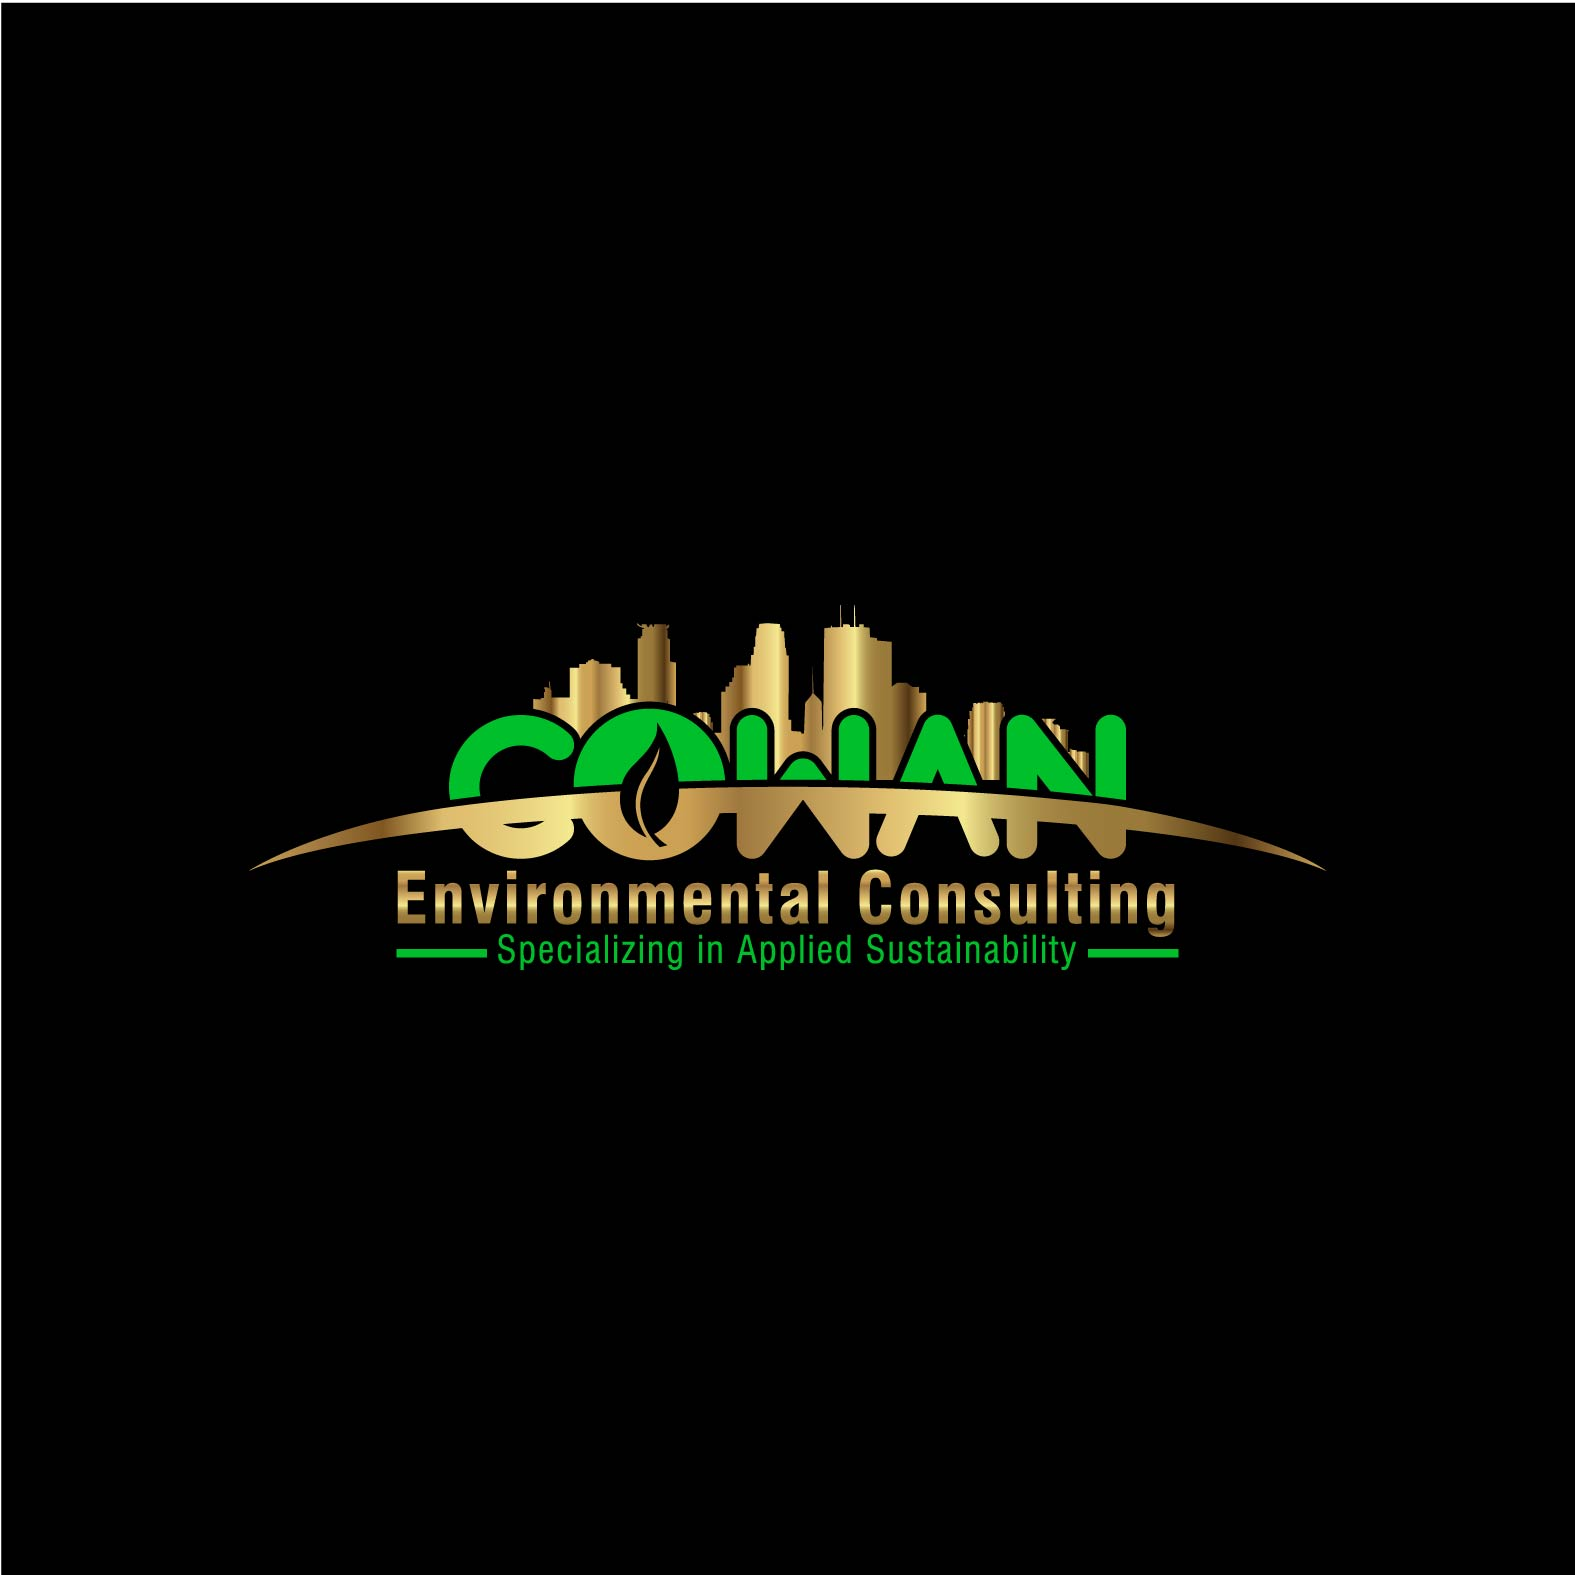 Logo Design by lagalag - Entry No. 95 in the Logo Design Contest Fun Logo Design for Cowan Environmental Consulting.